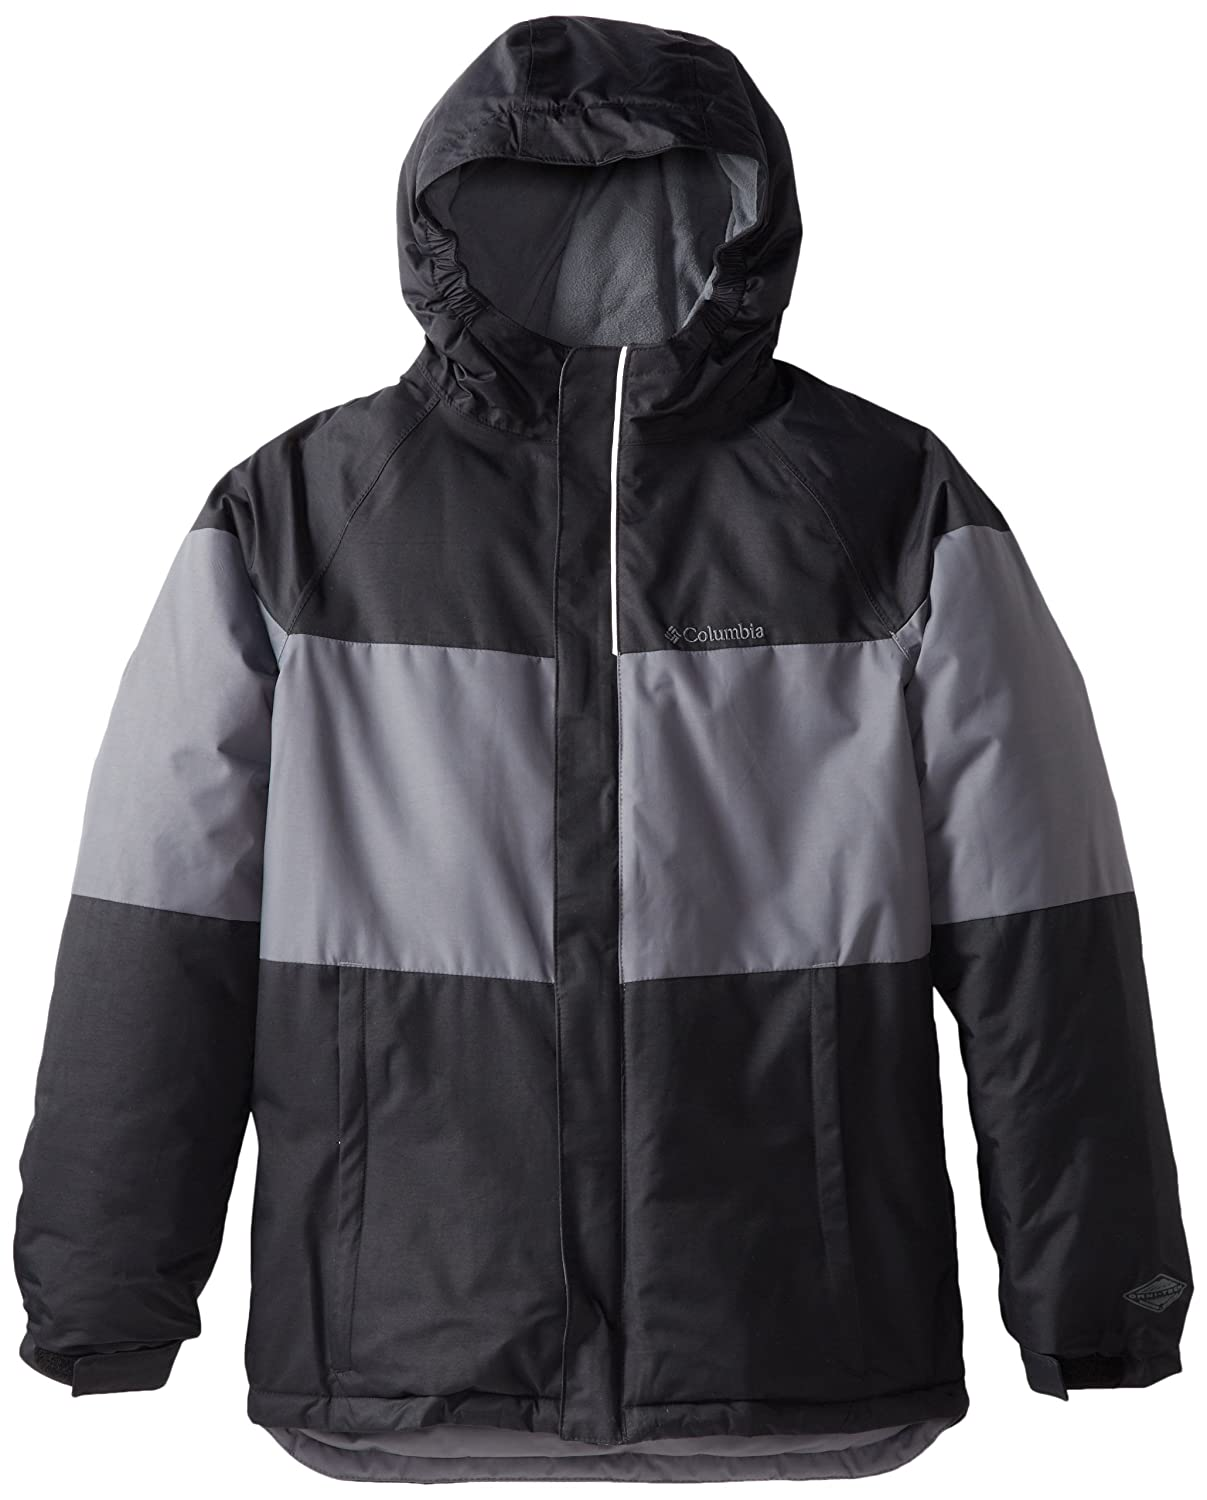 Columbia Boys' Alpine Action Jacket Columbia (Sporting Goods) 1514281